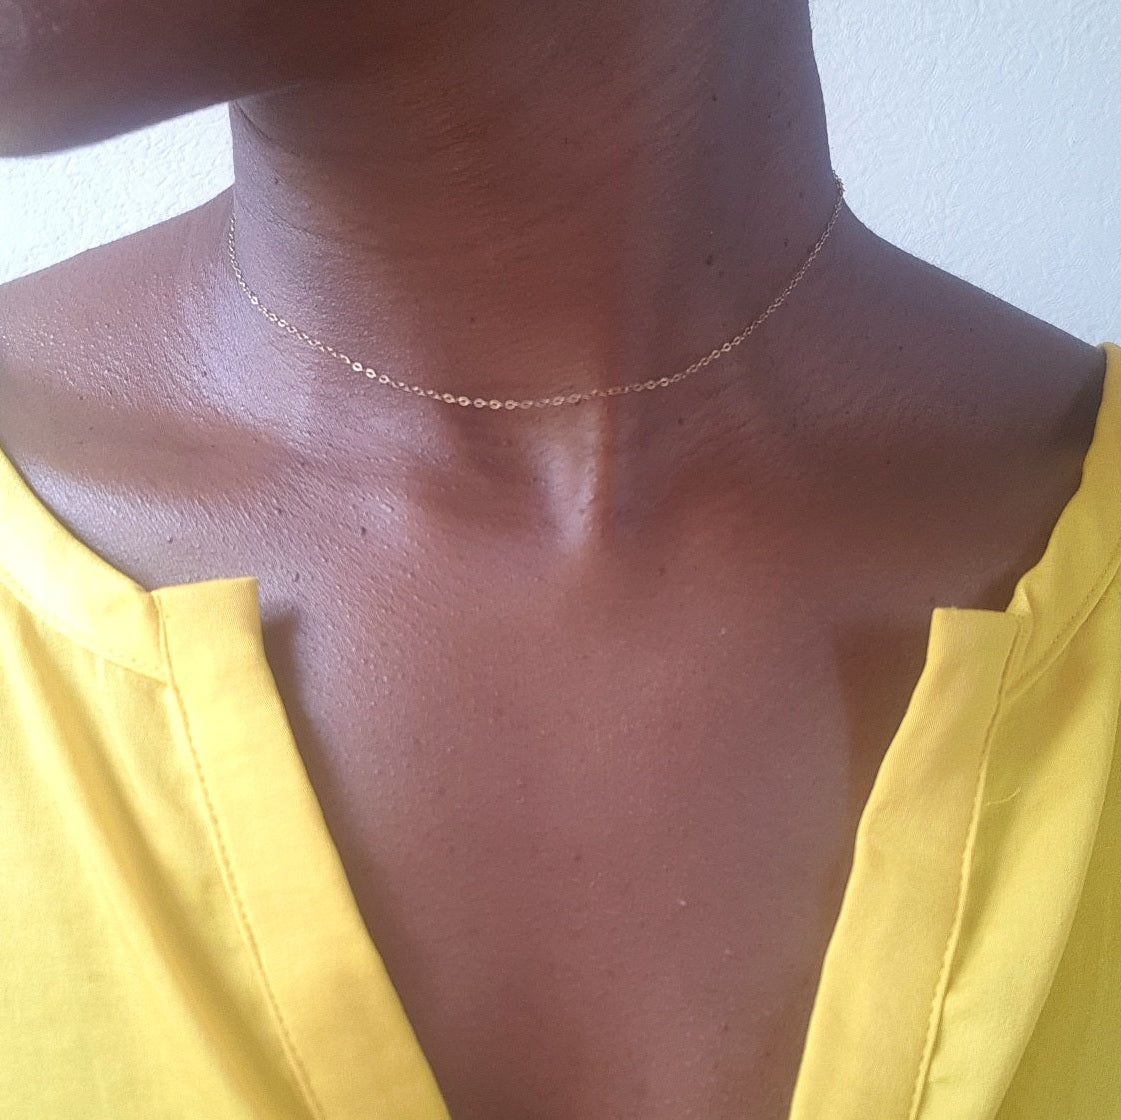 Plain Jane - Choker Chain